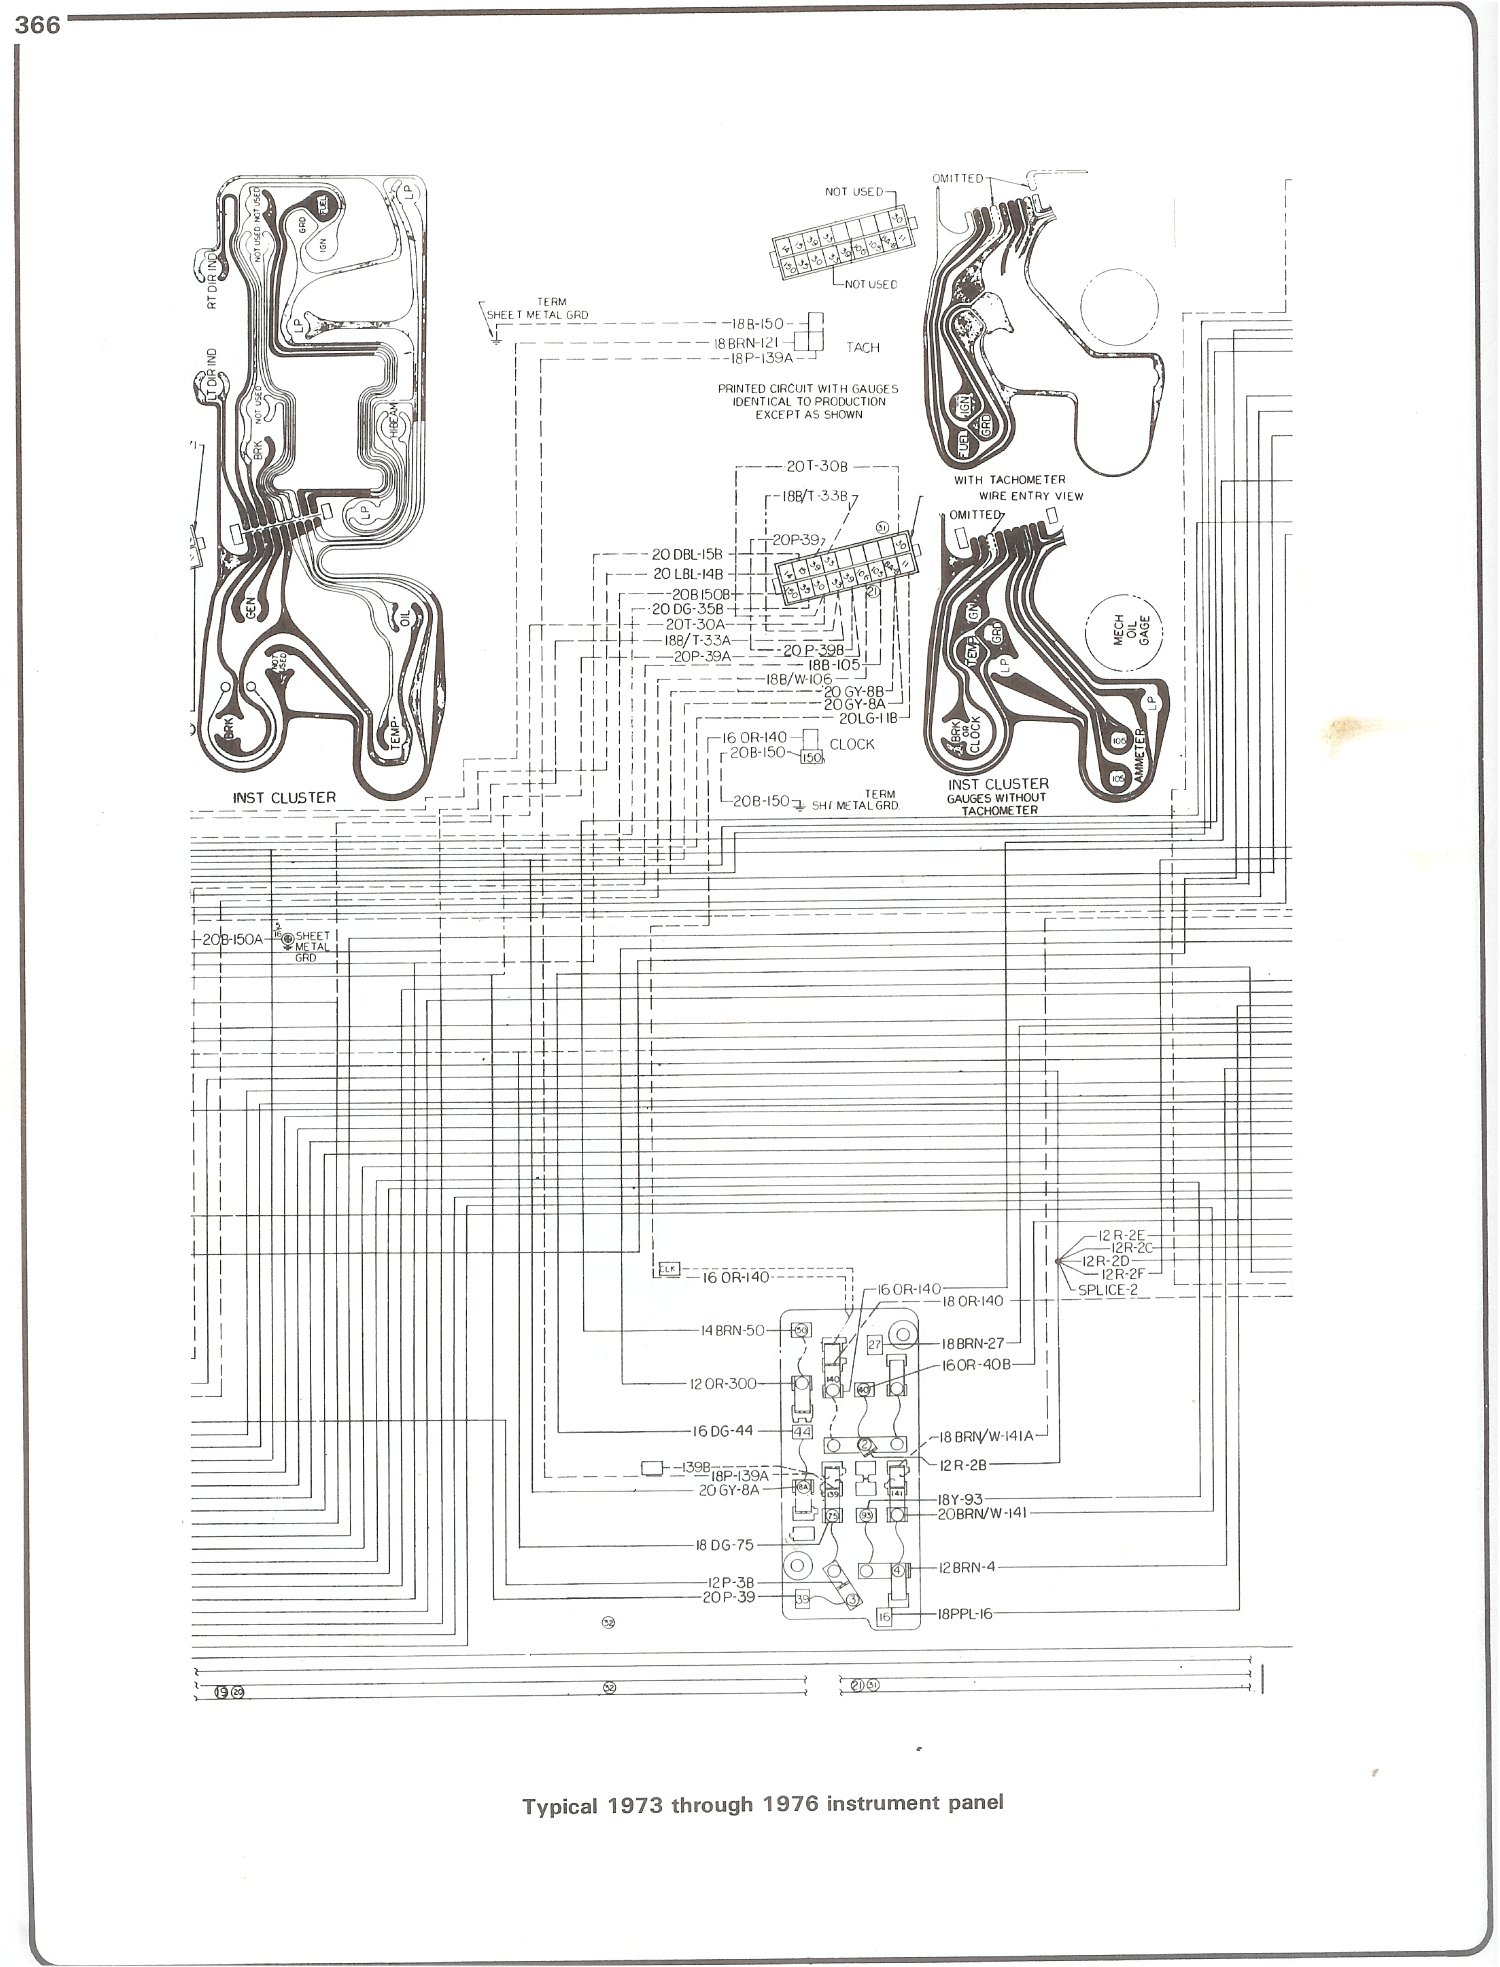 [DIAGRAM] 1950 Chevy Truck Wiring Diagram FULL Version HD